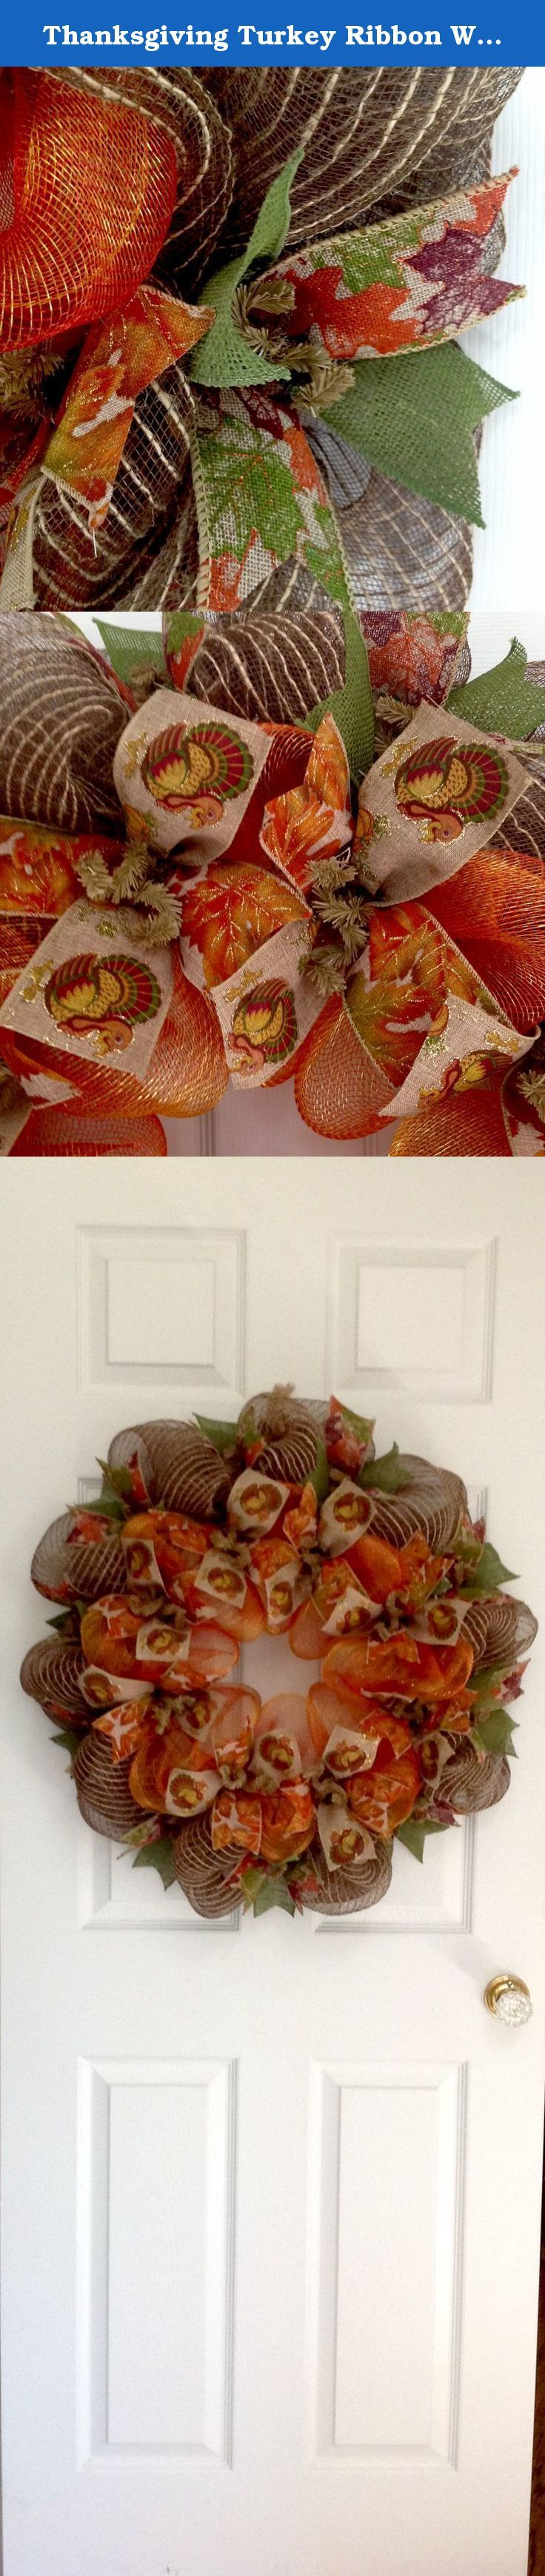 Thanksgiving Turkey Ribbon Wreath Handmade Deco Mesh. New! Full! Premium! Handmade Harvest Or Thanksgiving Wreath. The outer ring is a creamy brown burlap mesh with natural jute threads. Gorgeous leaf printed premium burlap ribbons along with moss green burlap ribbons surround the exterior. The center ring is made with bright orange and gold two tone deco mesh. Beautiful canvas ribbons with printed turkeys and colorful Autumn leaves ribbons surround the center. It is a large, full…